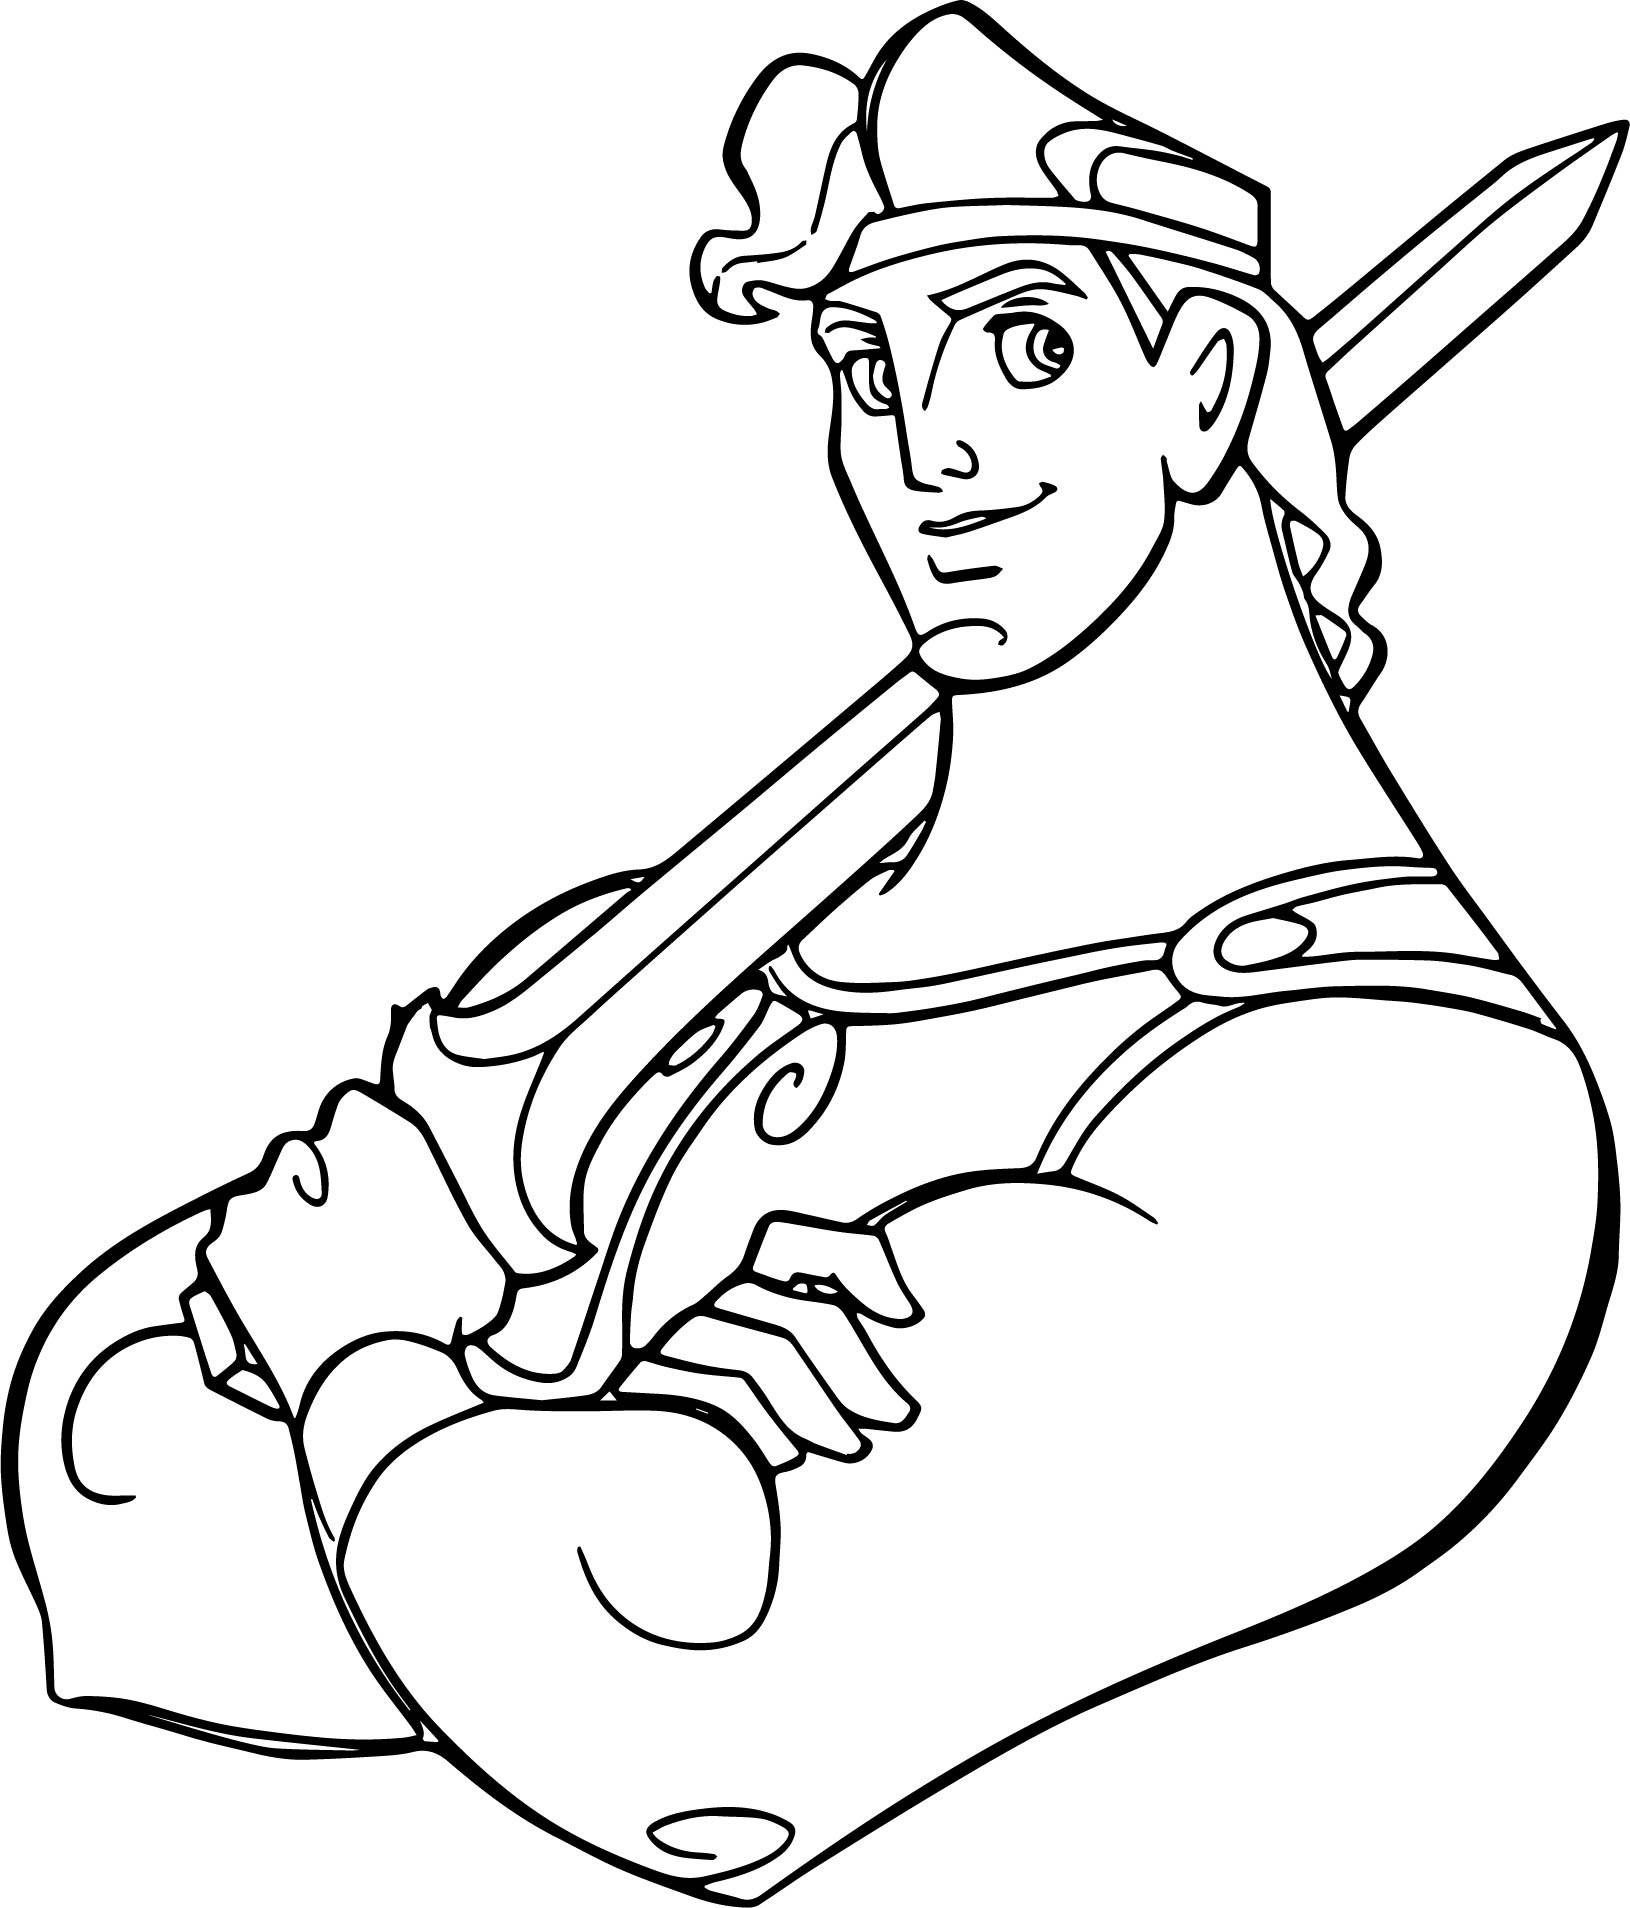 Hercules Ules Sword Pose Coloring Pages